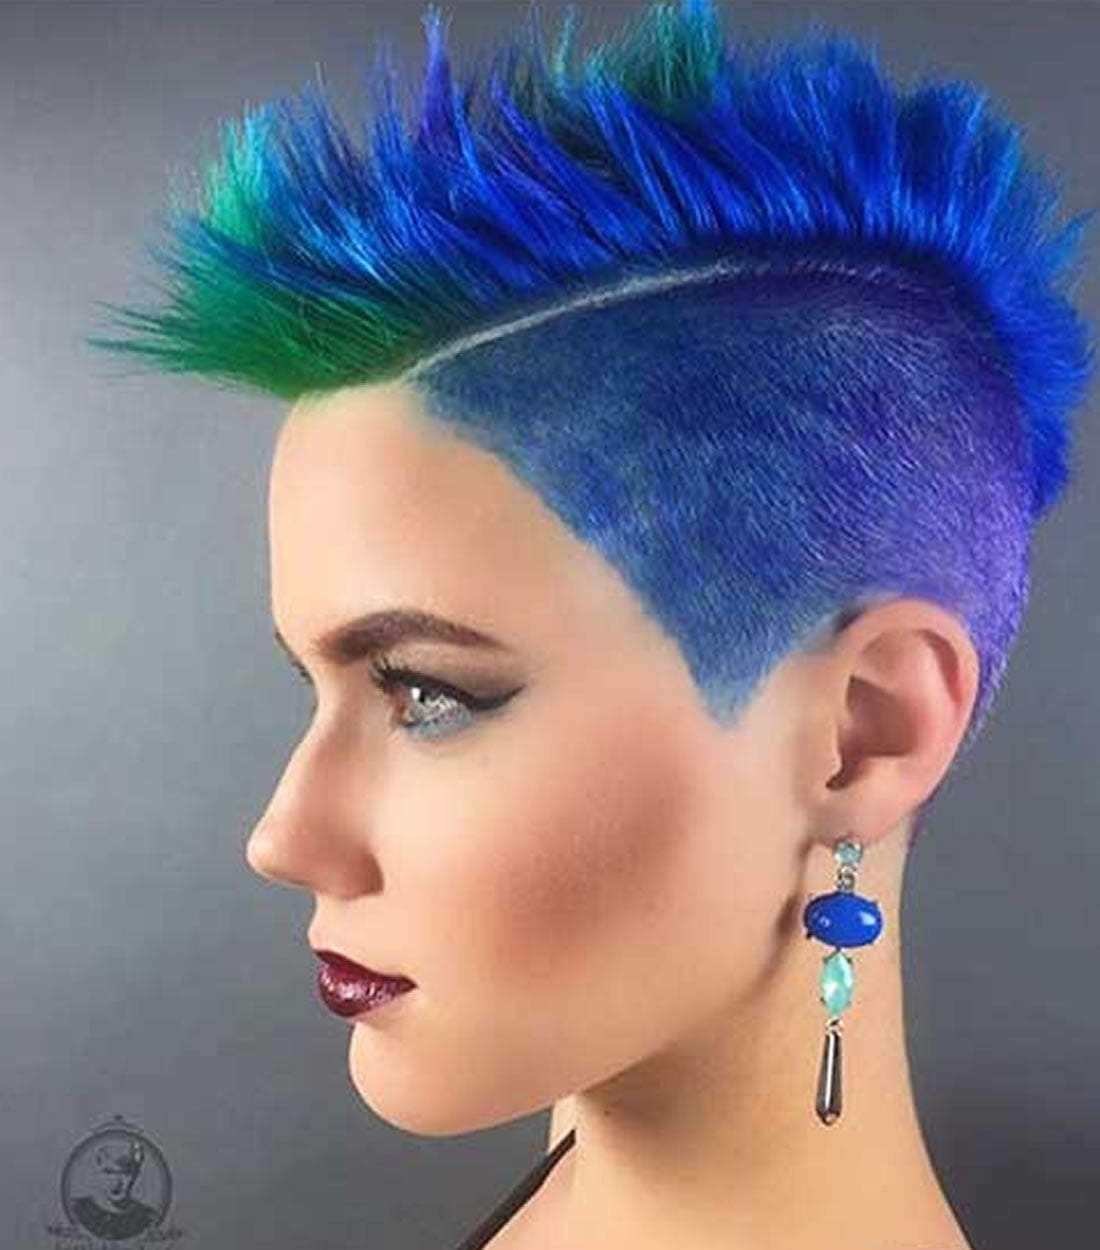 new hair dye styles 2018 blue hair color hairstyles for pretty page 2 of 5 1414